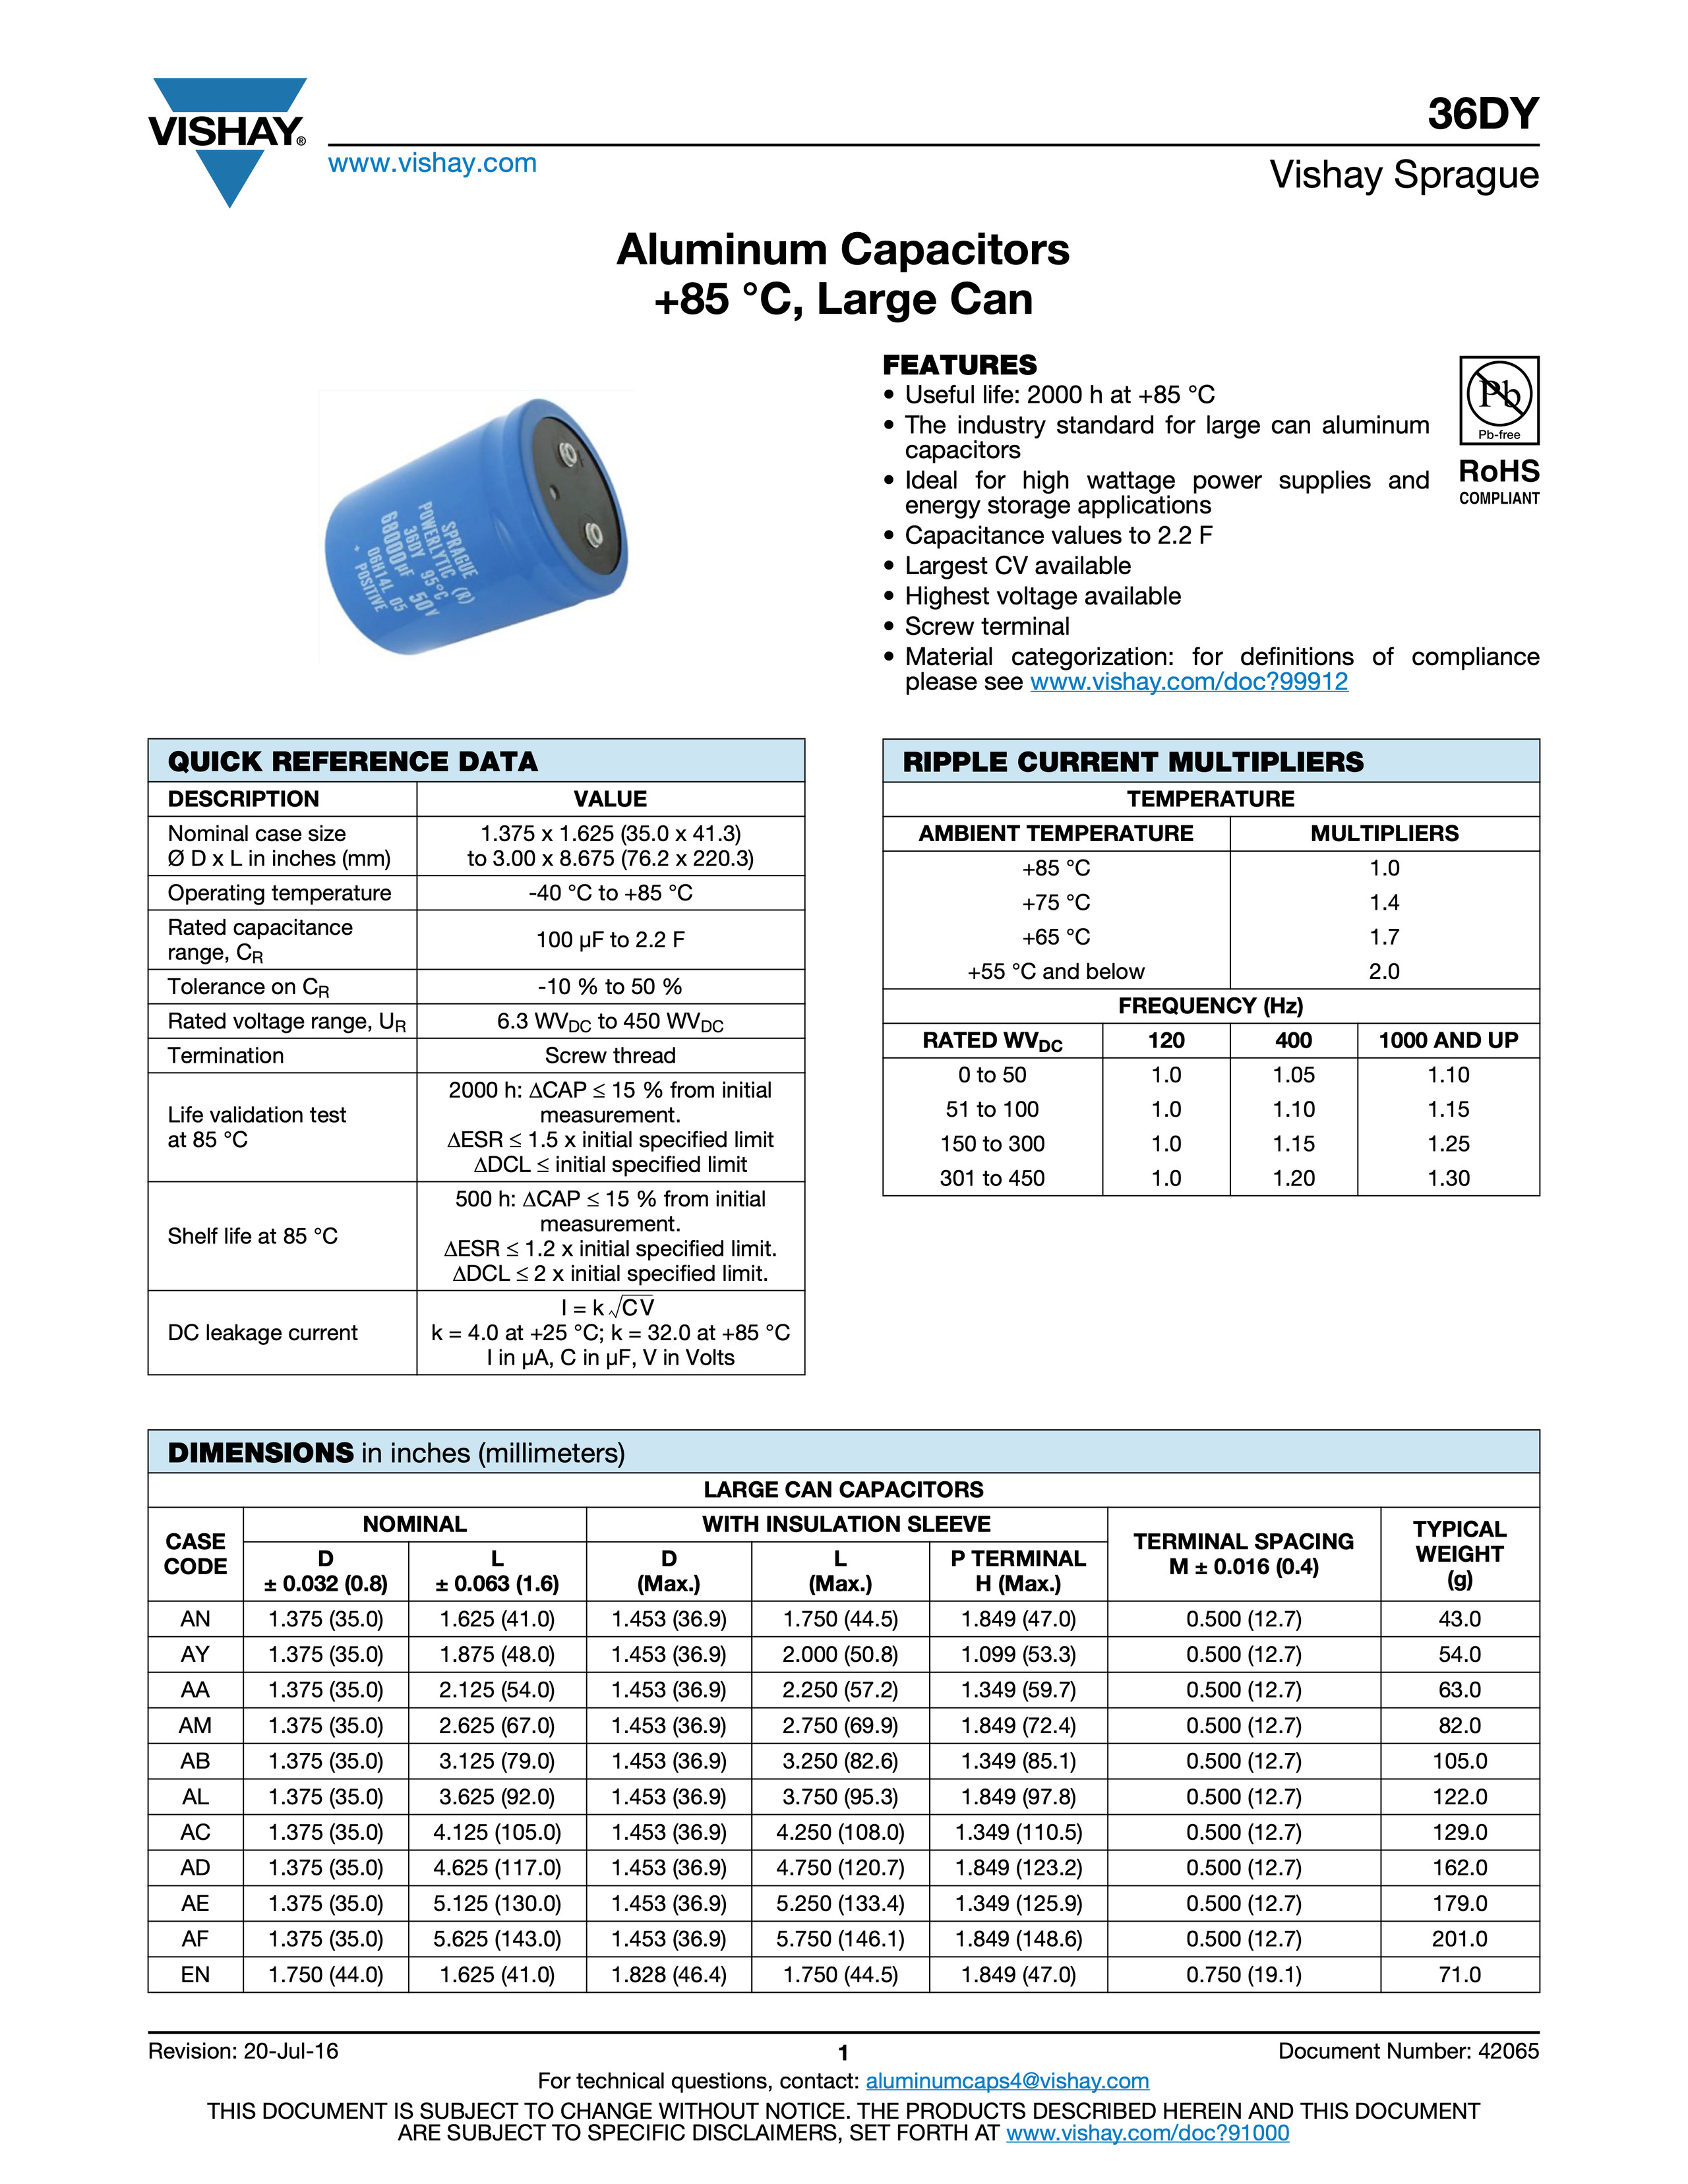 Vishay 36DY Series Capacitor Data Sheet